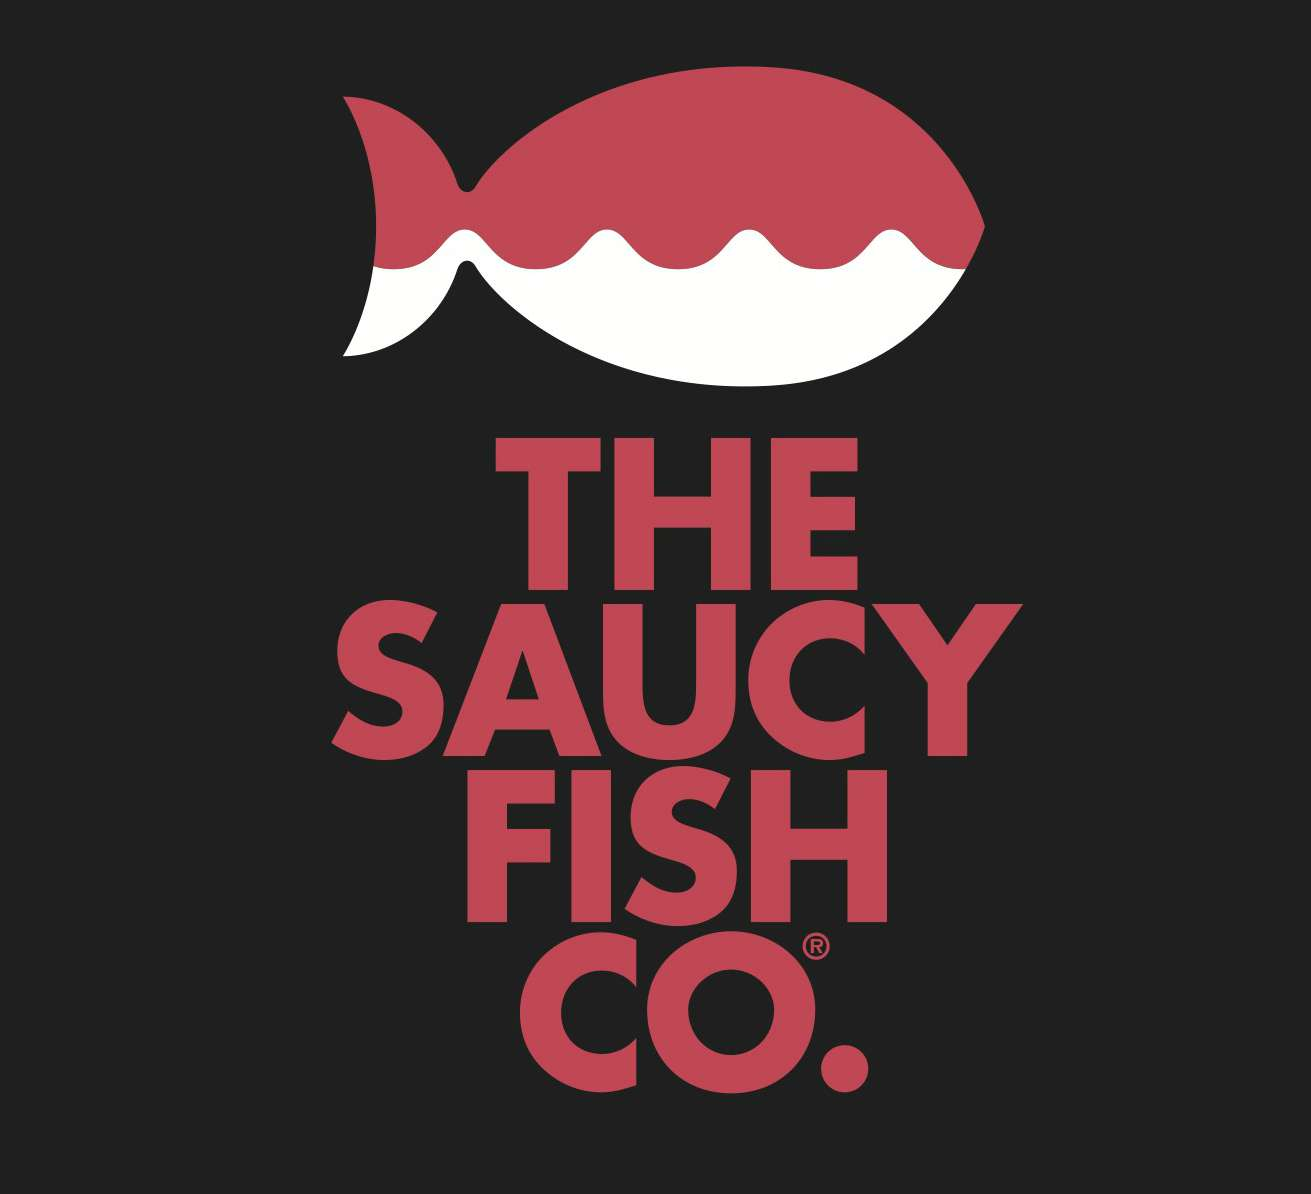 The Saucy Fish Co